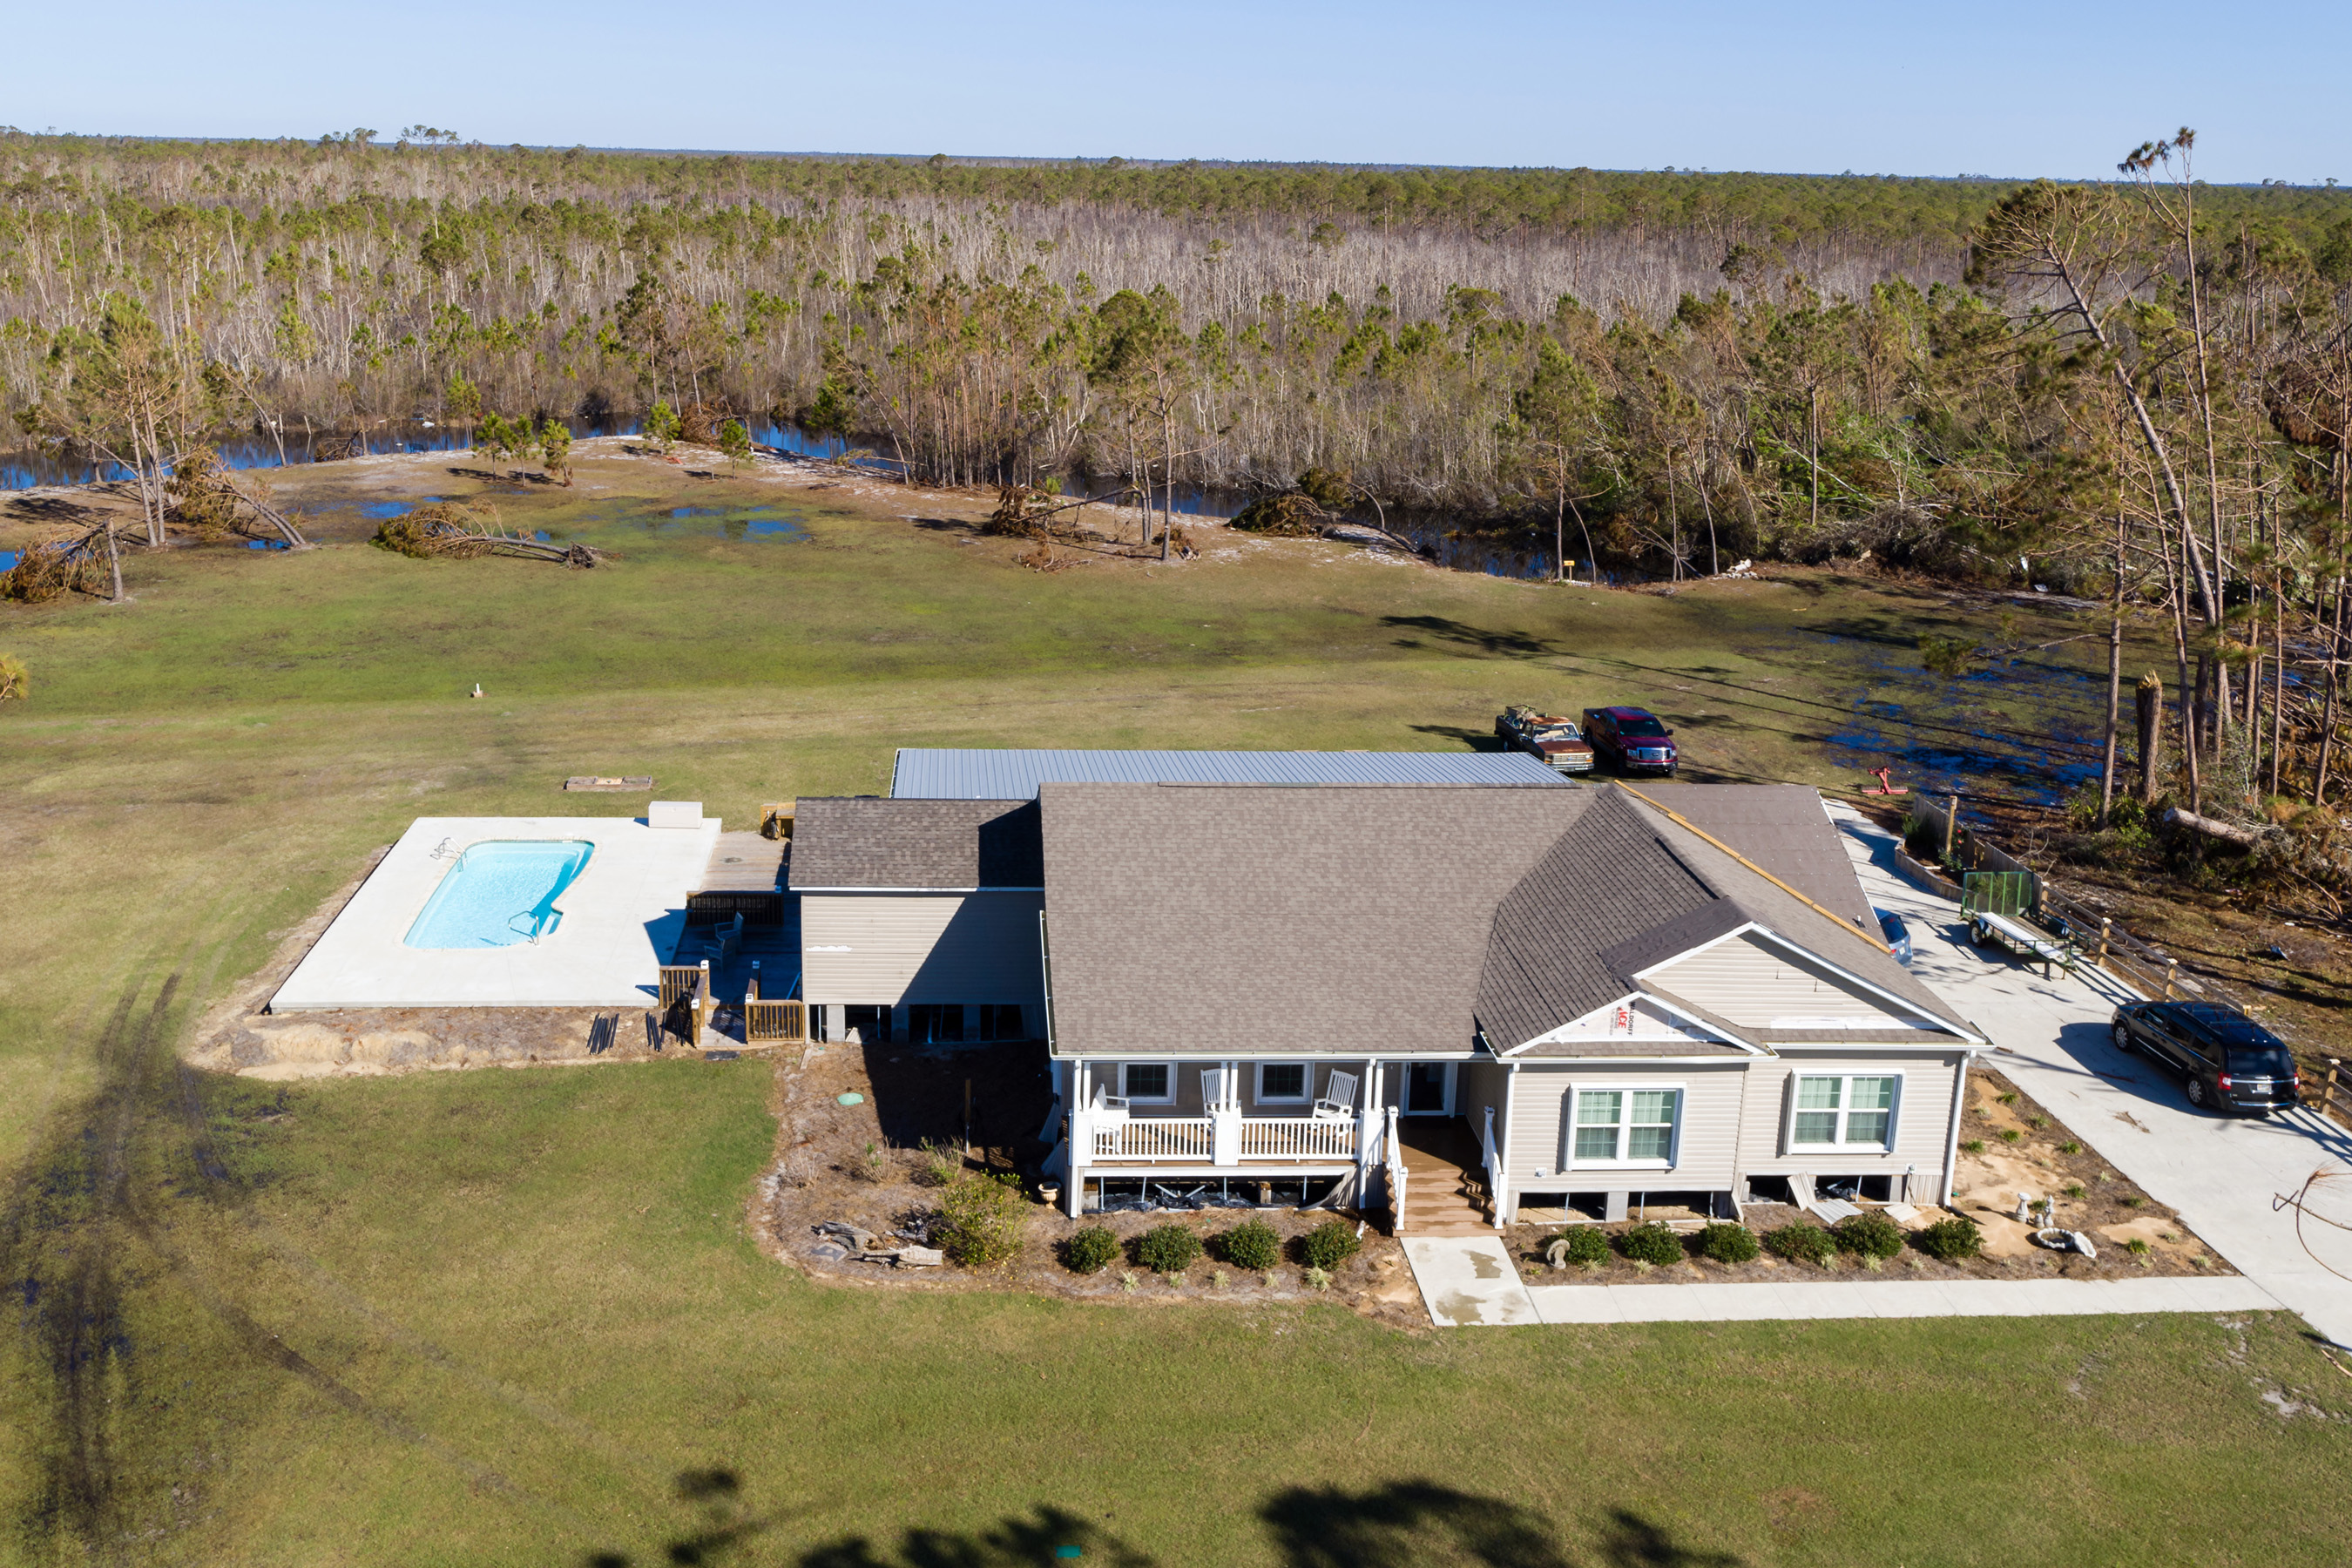 Hurricane Michael's 155 mph winds and 9ft storm surges only left the Clayton Built home with minimal damage.